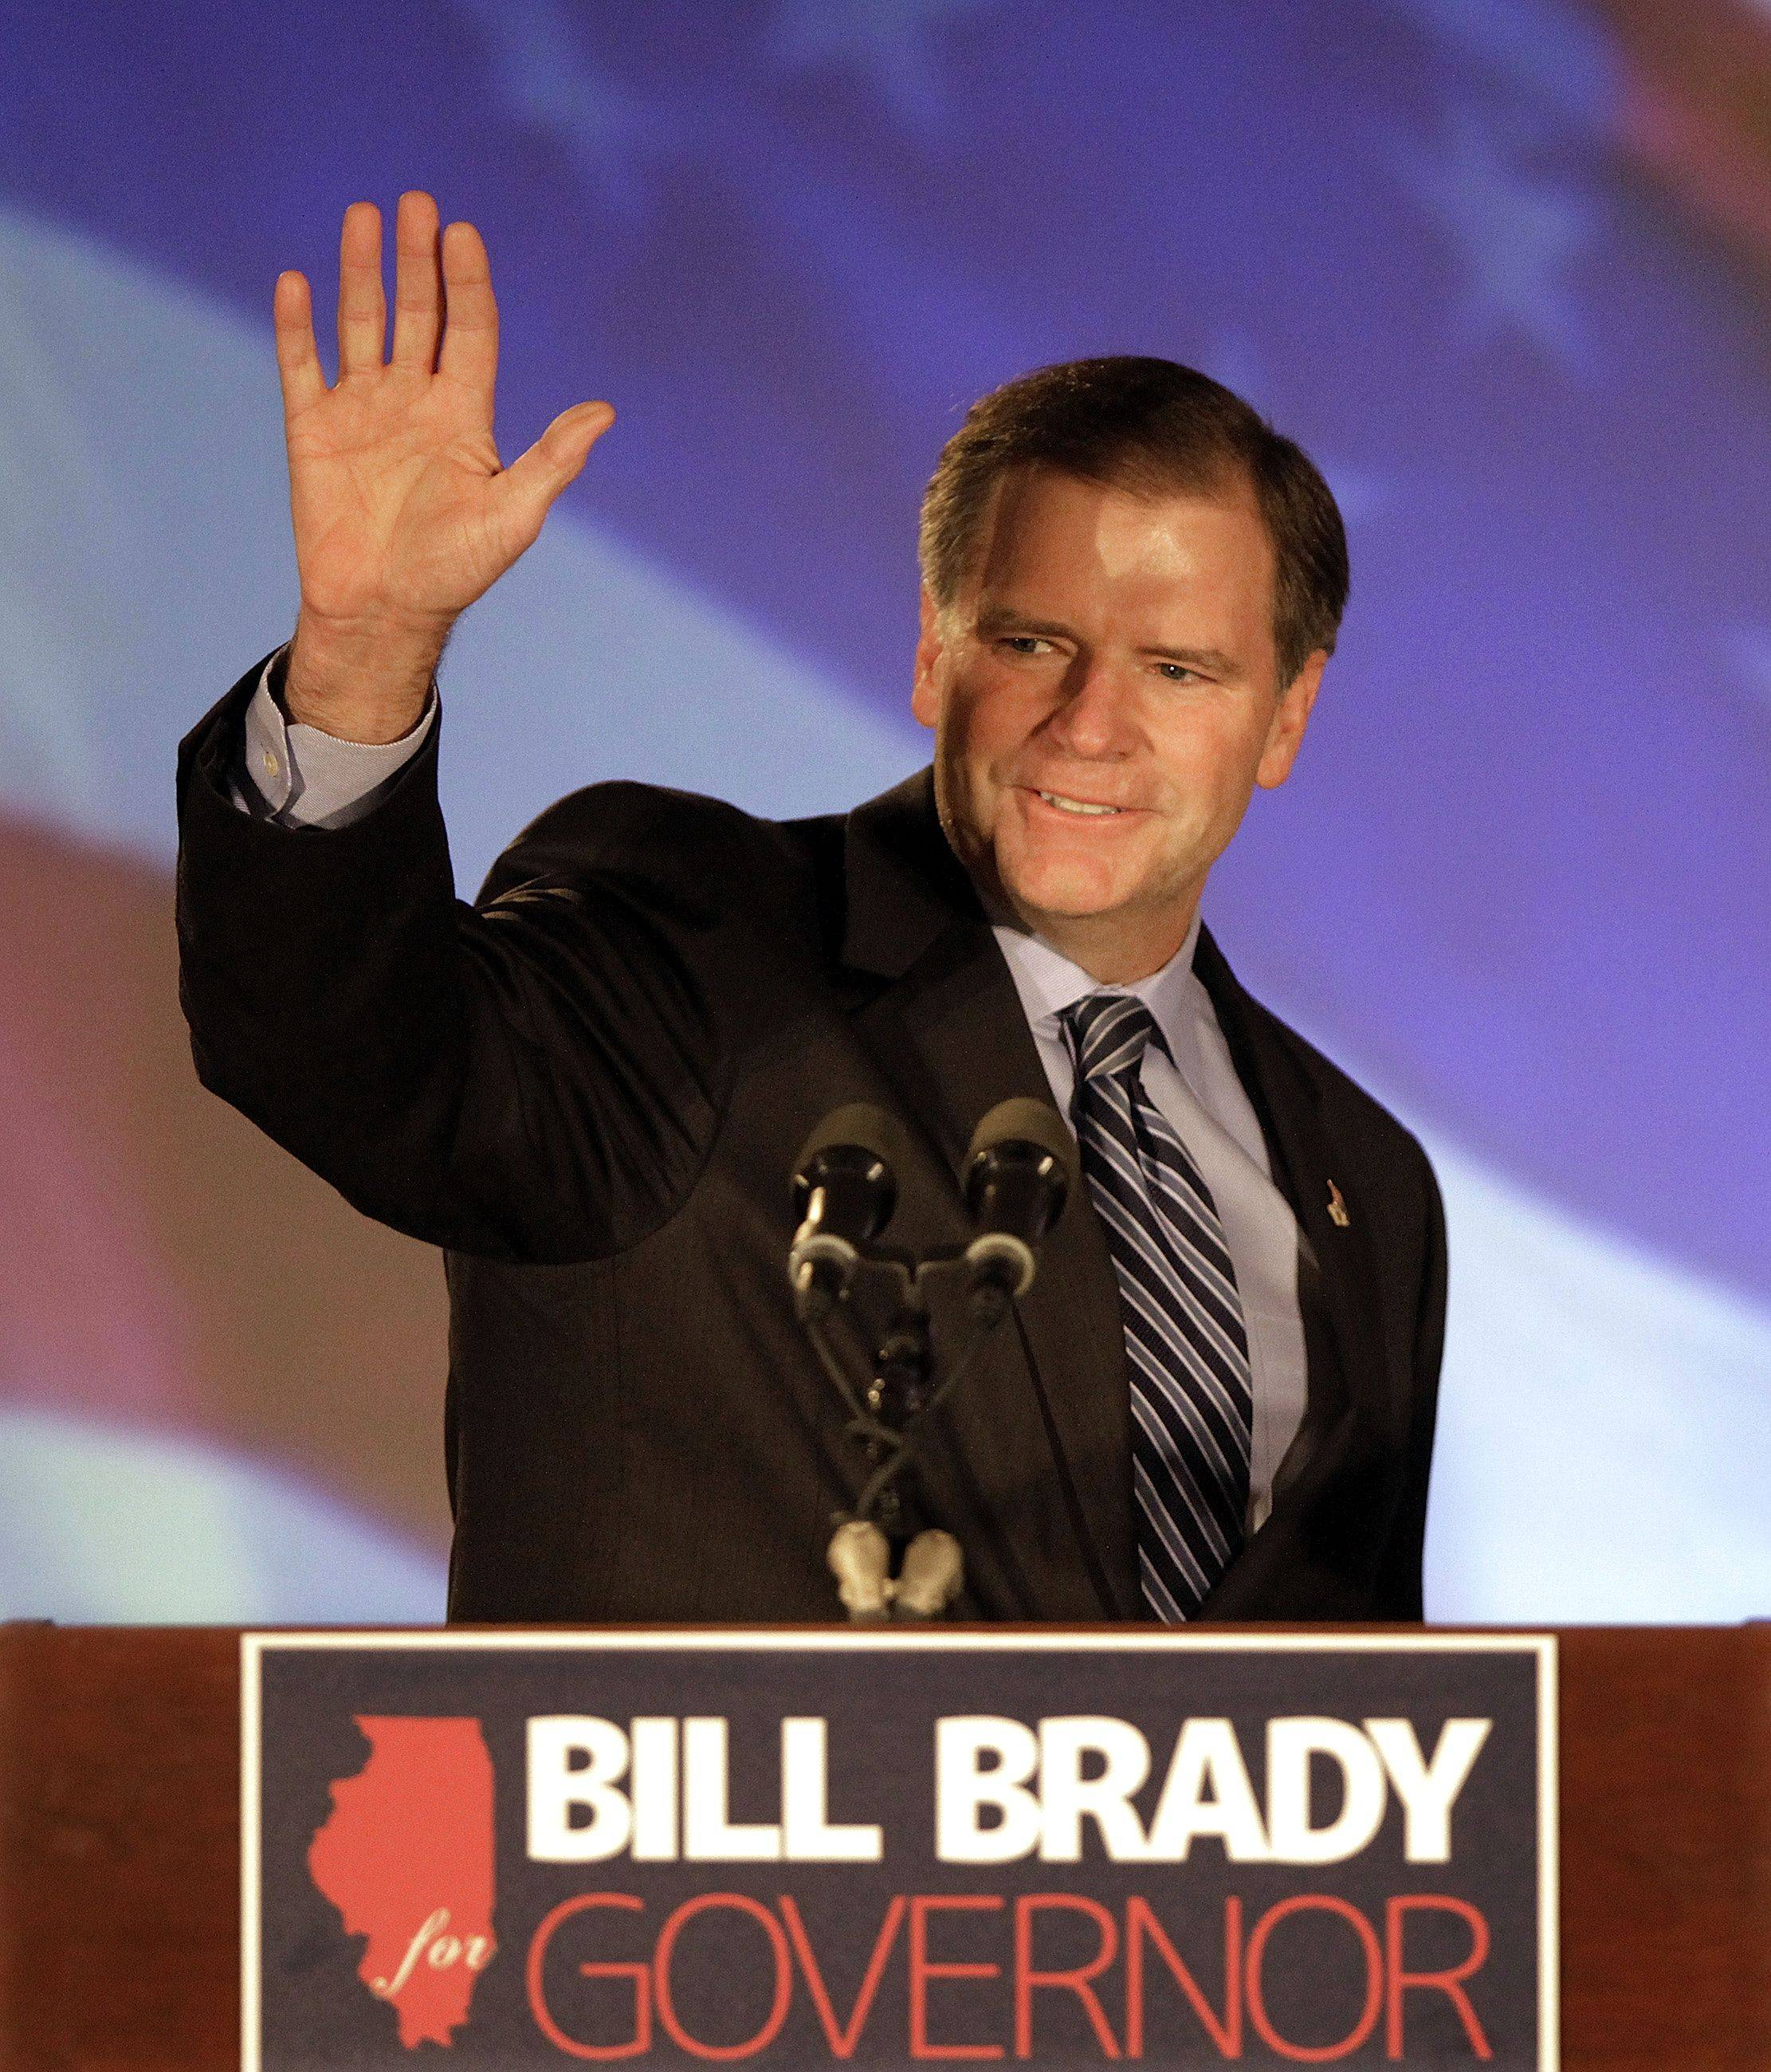 Illinois Republican gubernatorial candidate Bill Brady waves to supporters in Bloomington Wednesday, Nov. 3, 2010.